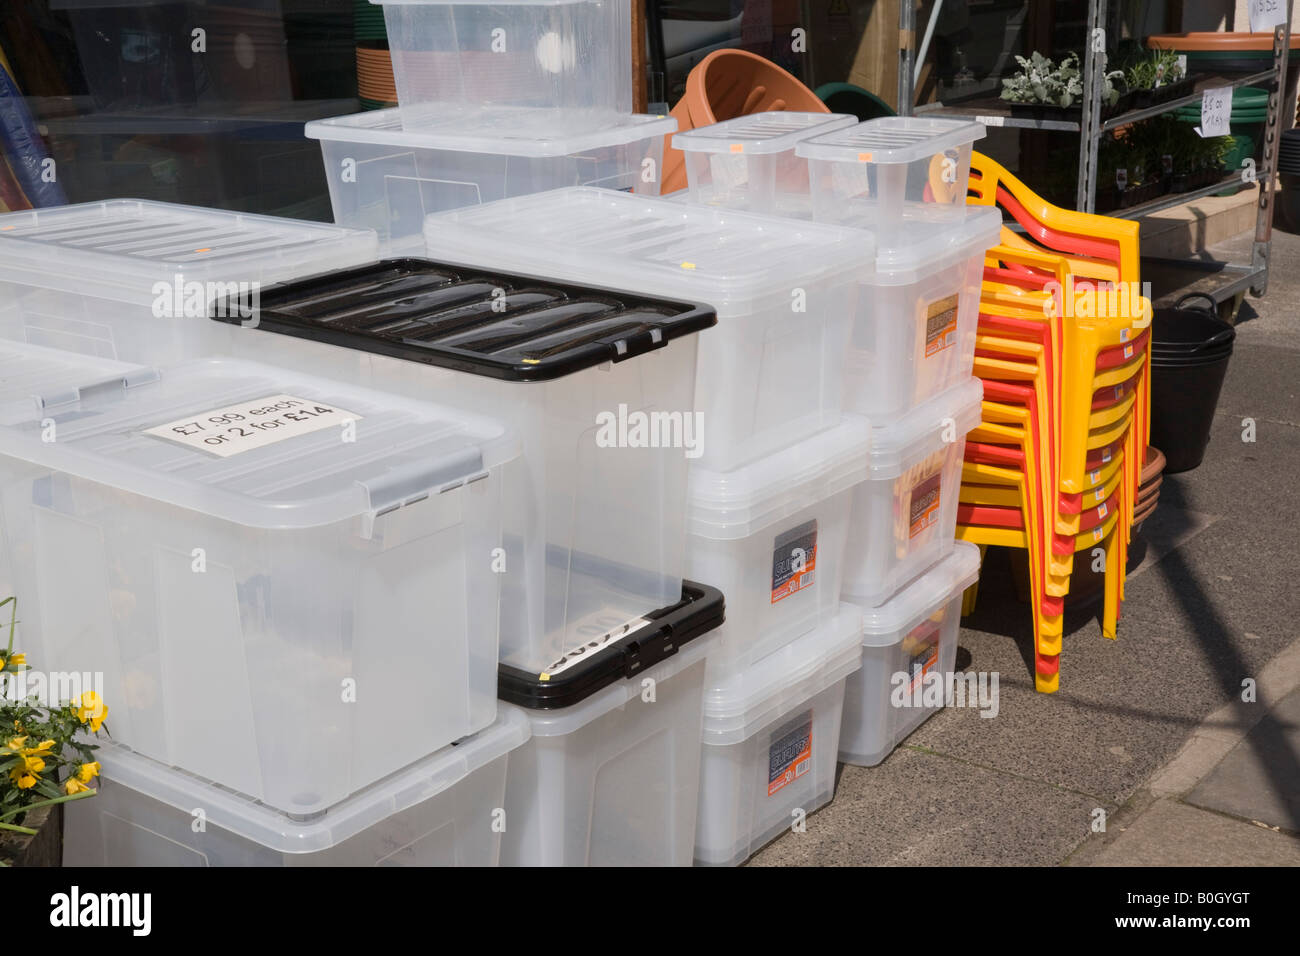 England UK Plastic boxes and chairs for sale on display outside shop Stock Photo